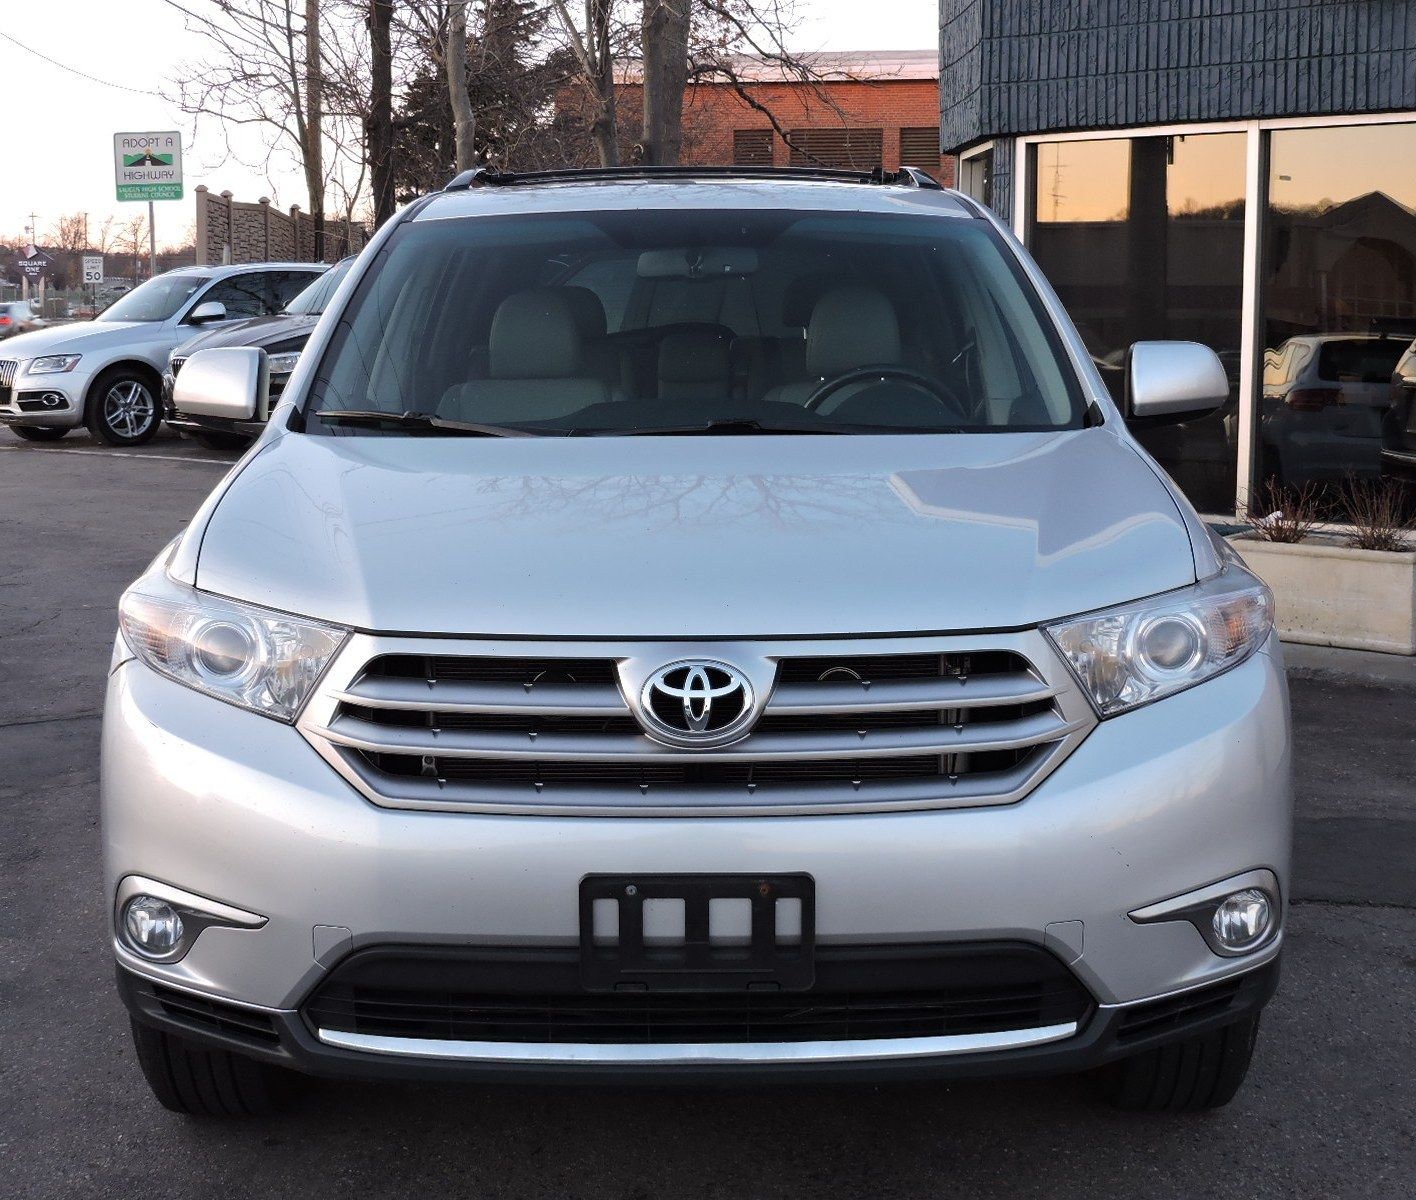 Pictures Of Toyota Highlander: Used 2013 Toyota Highlander SE At Saugus Auto Mall